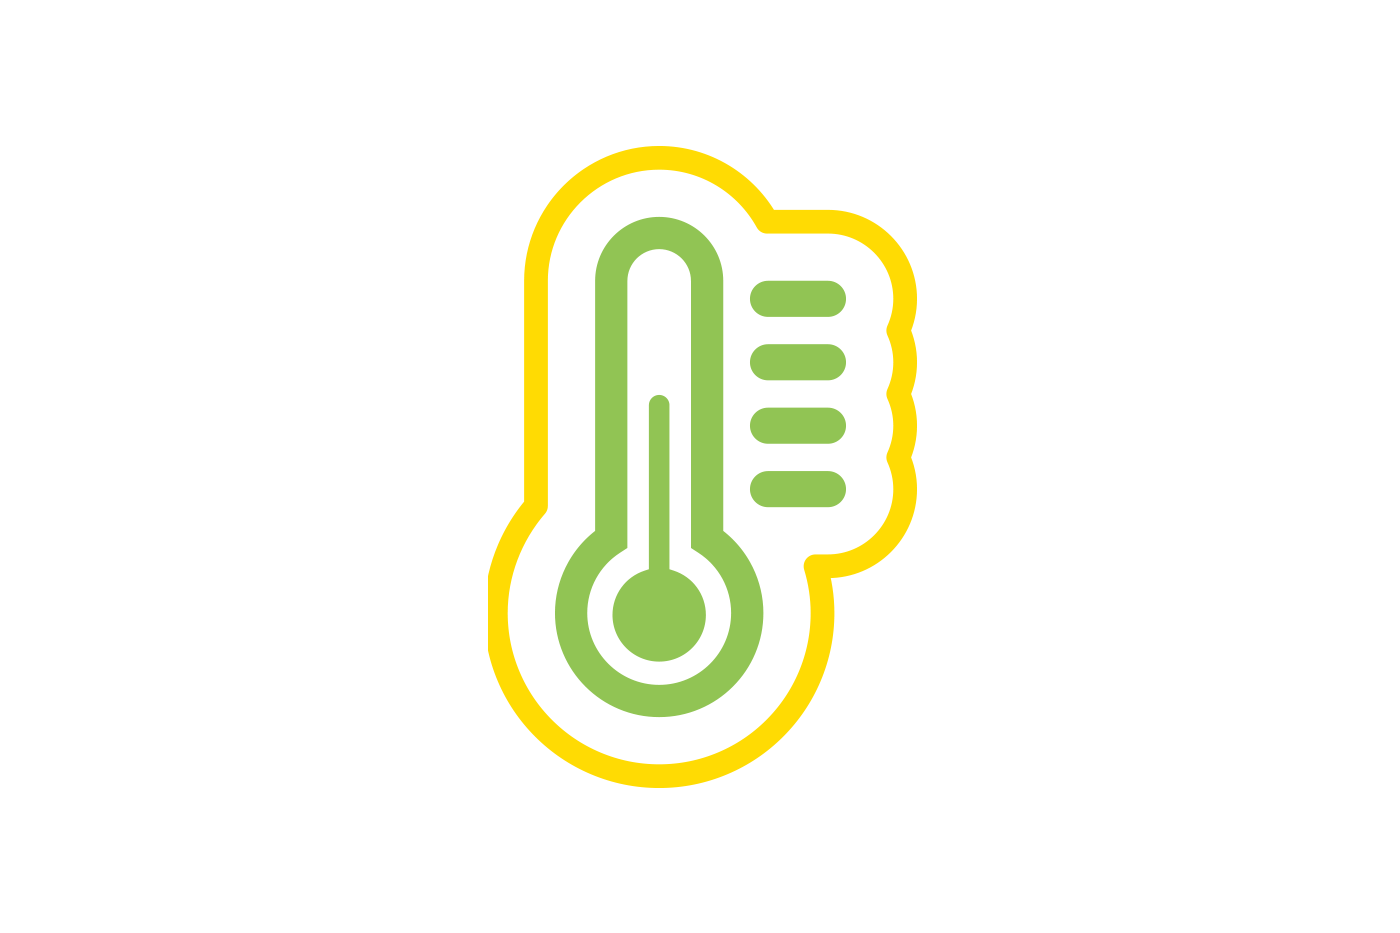 Temperature controlled storage icon